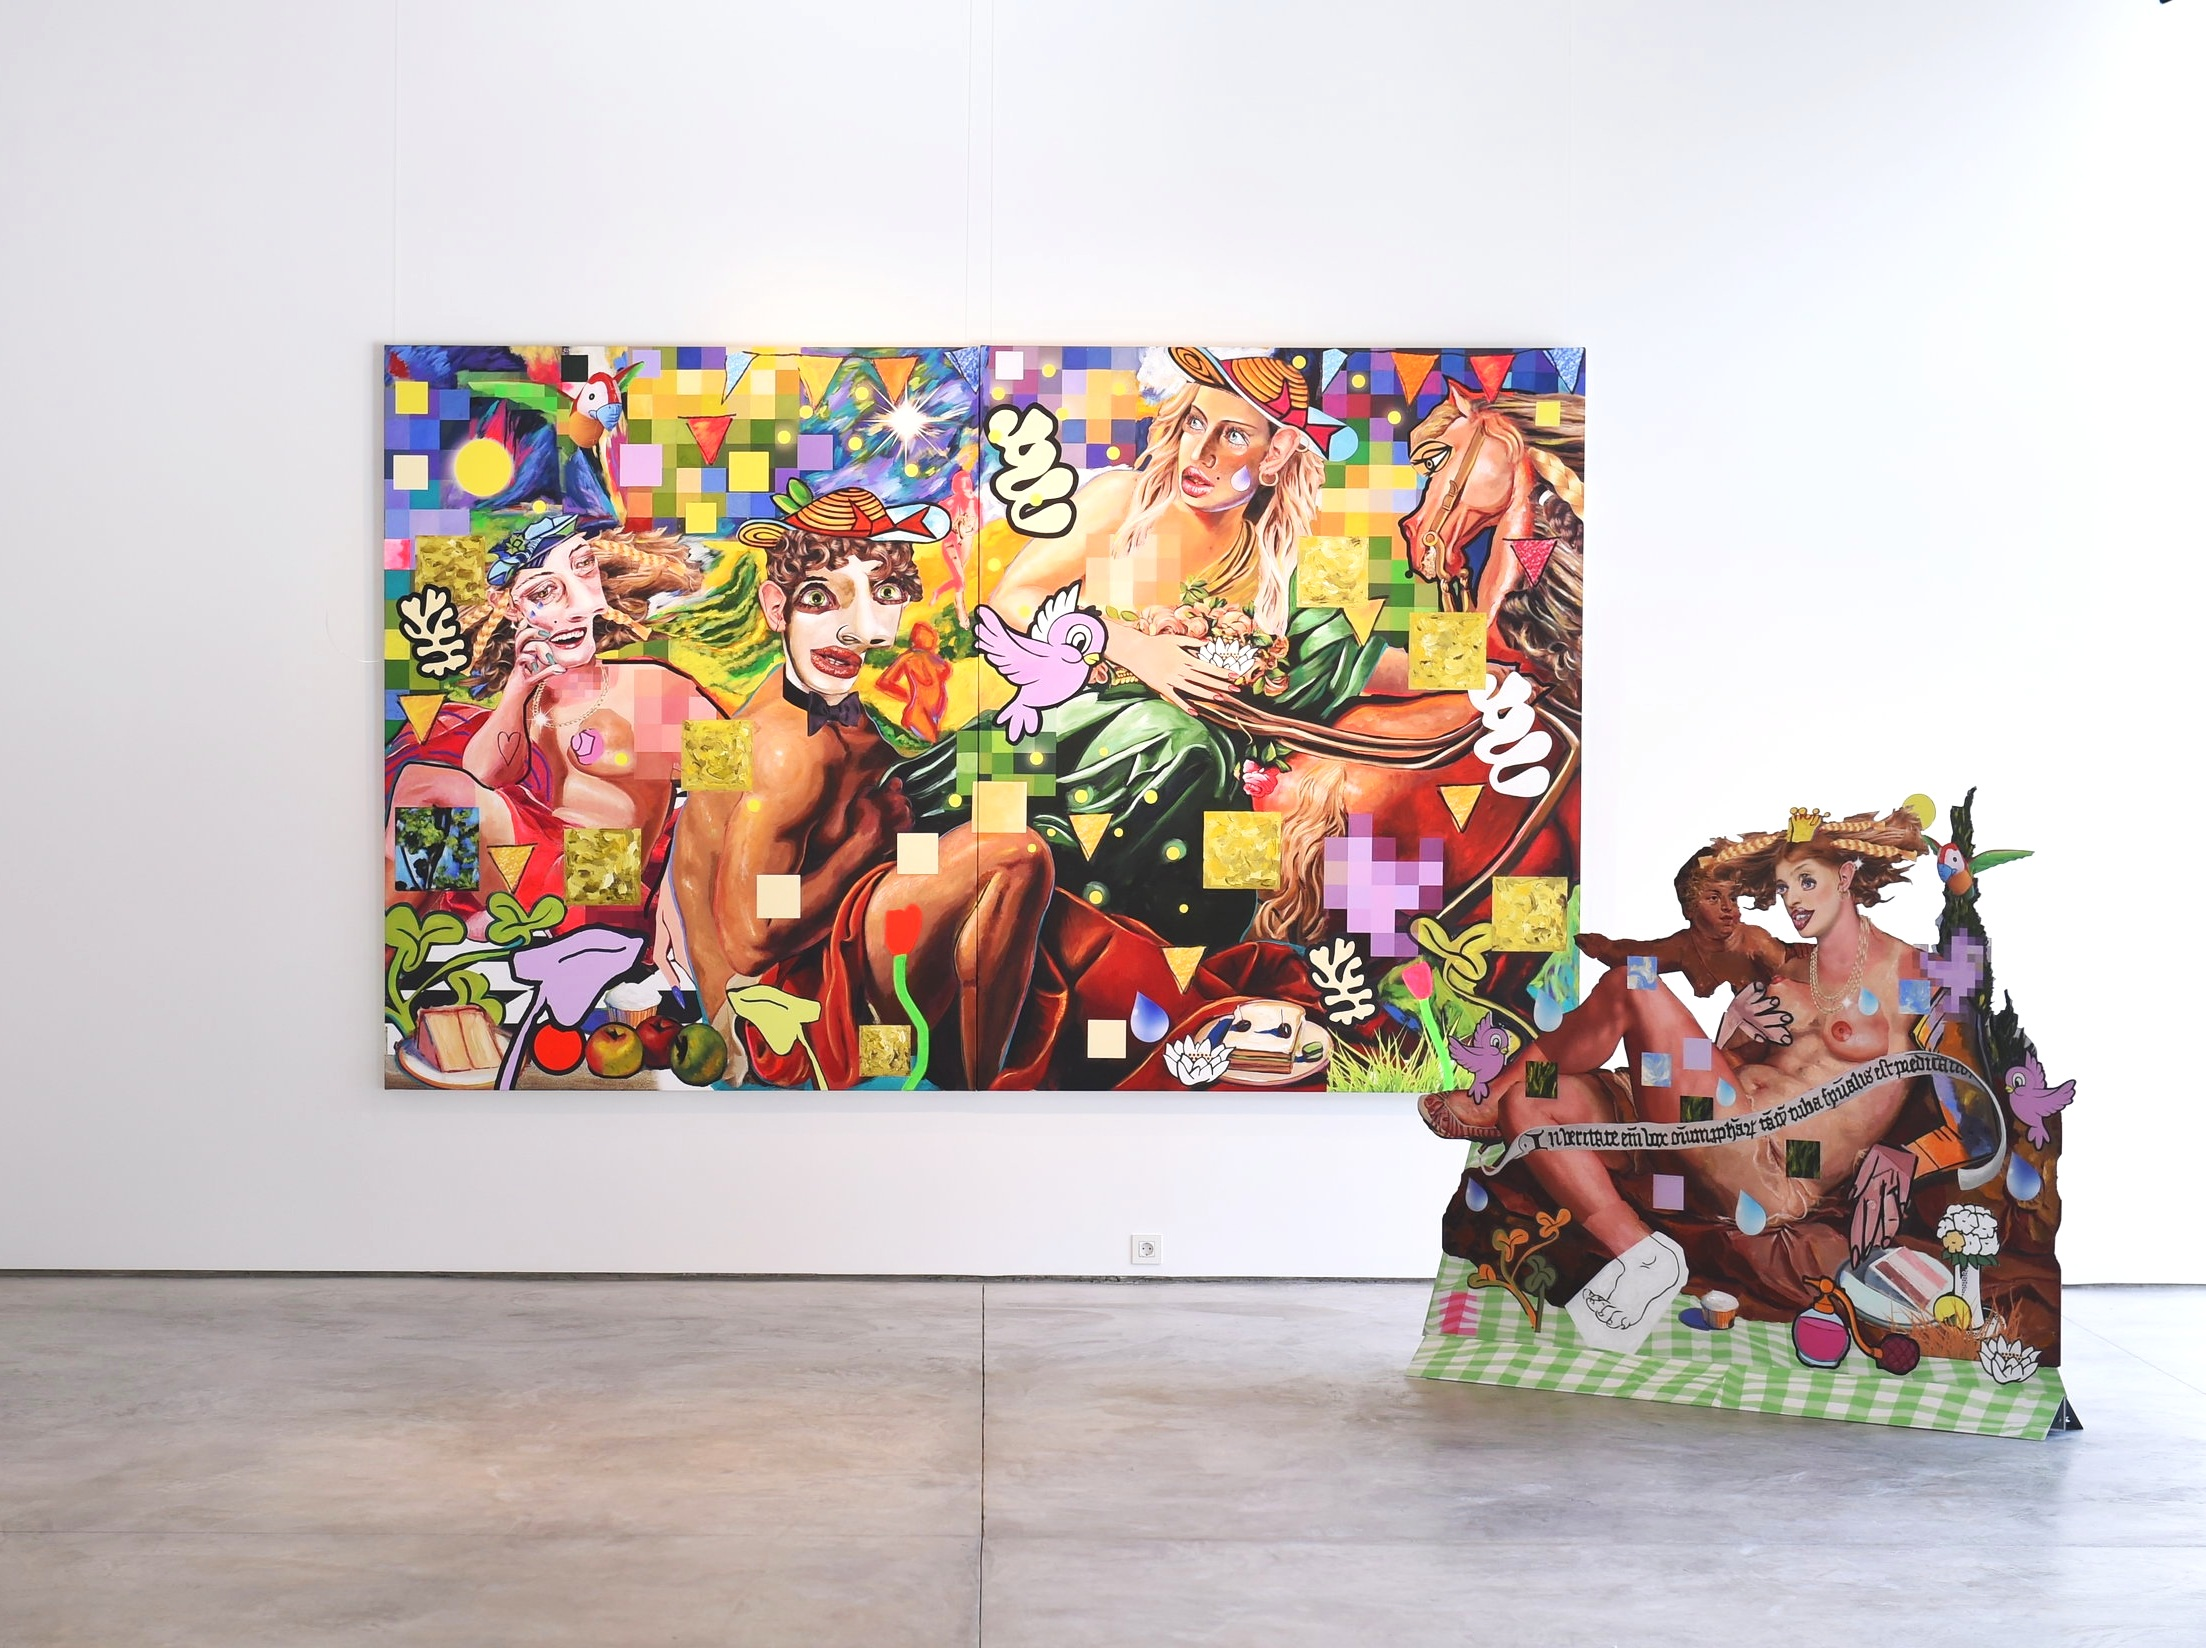 Allison Zuckerman for The One Thousand One Nights at Artual Gallery in Beirut, Labanon.